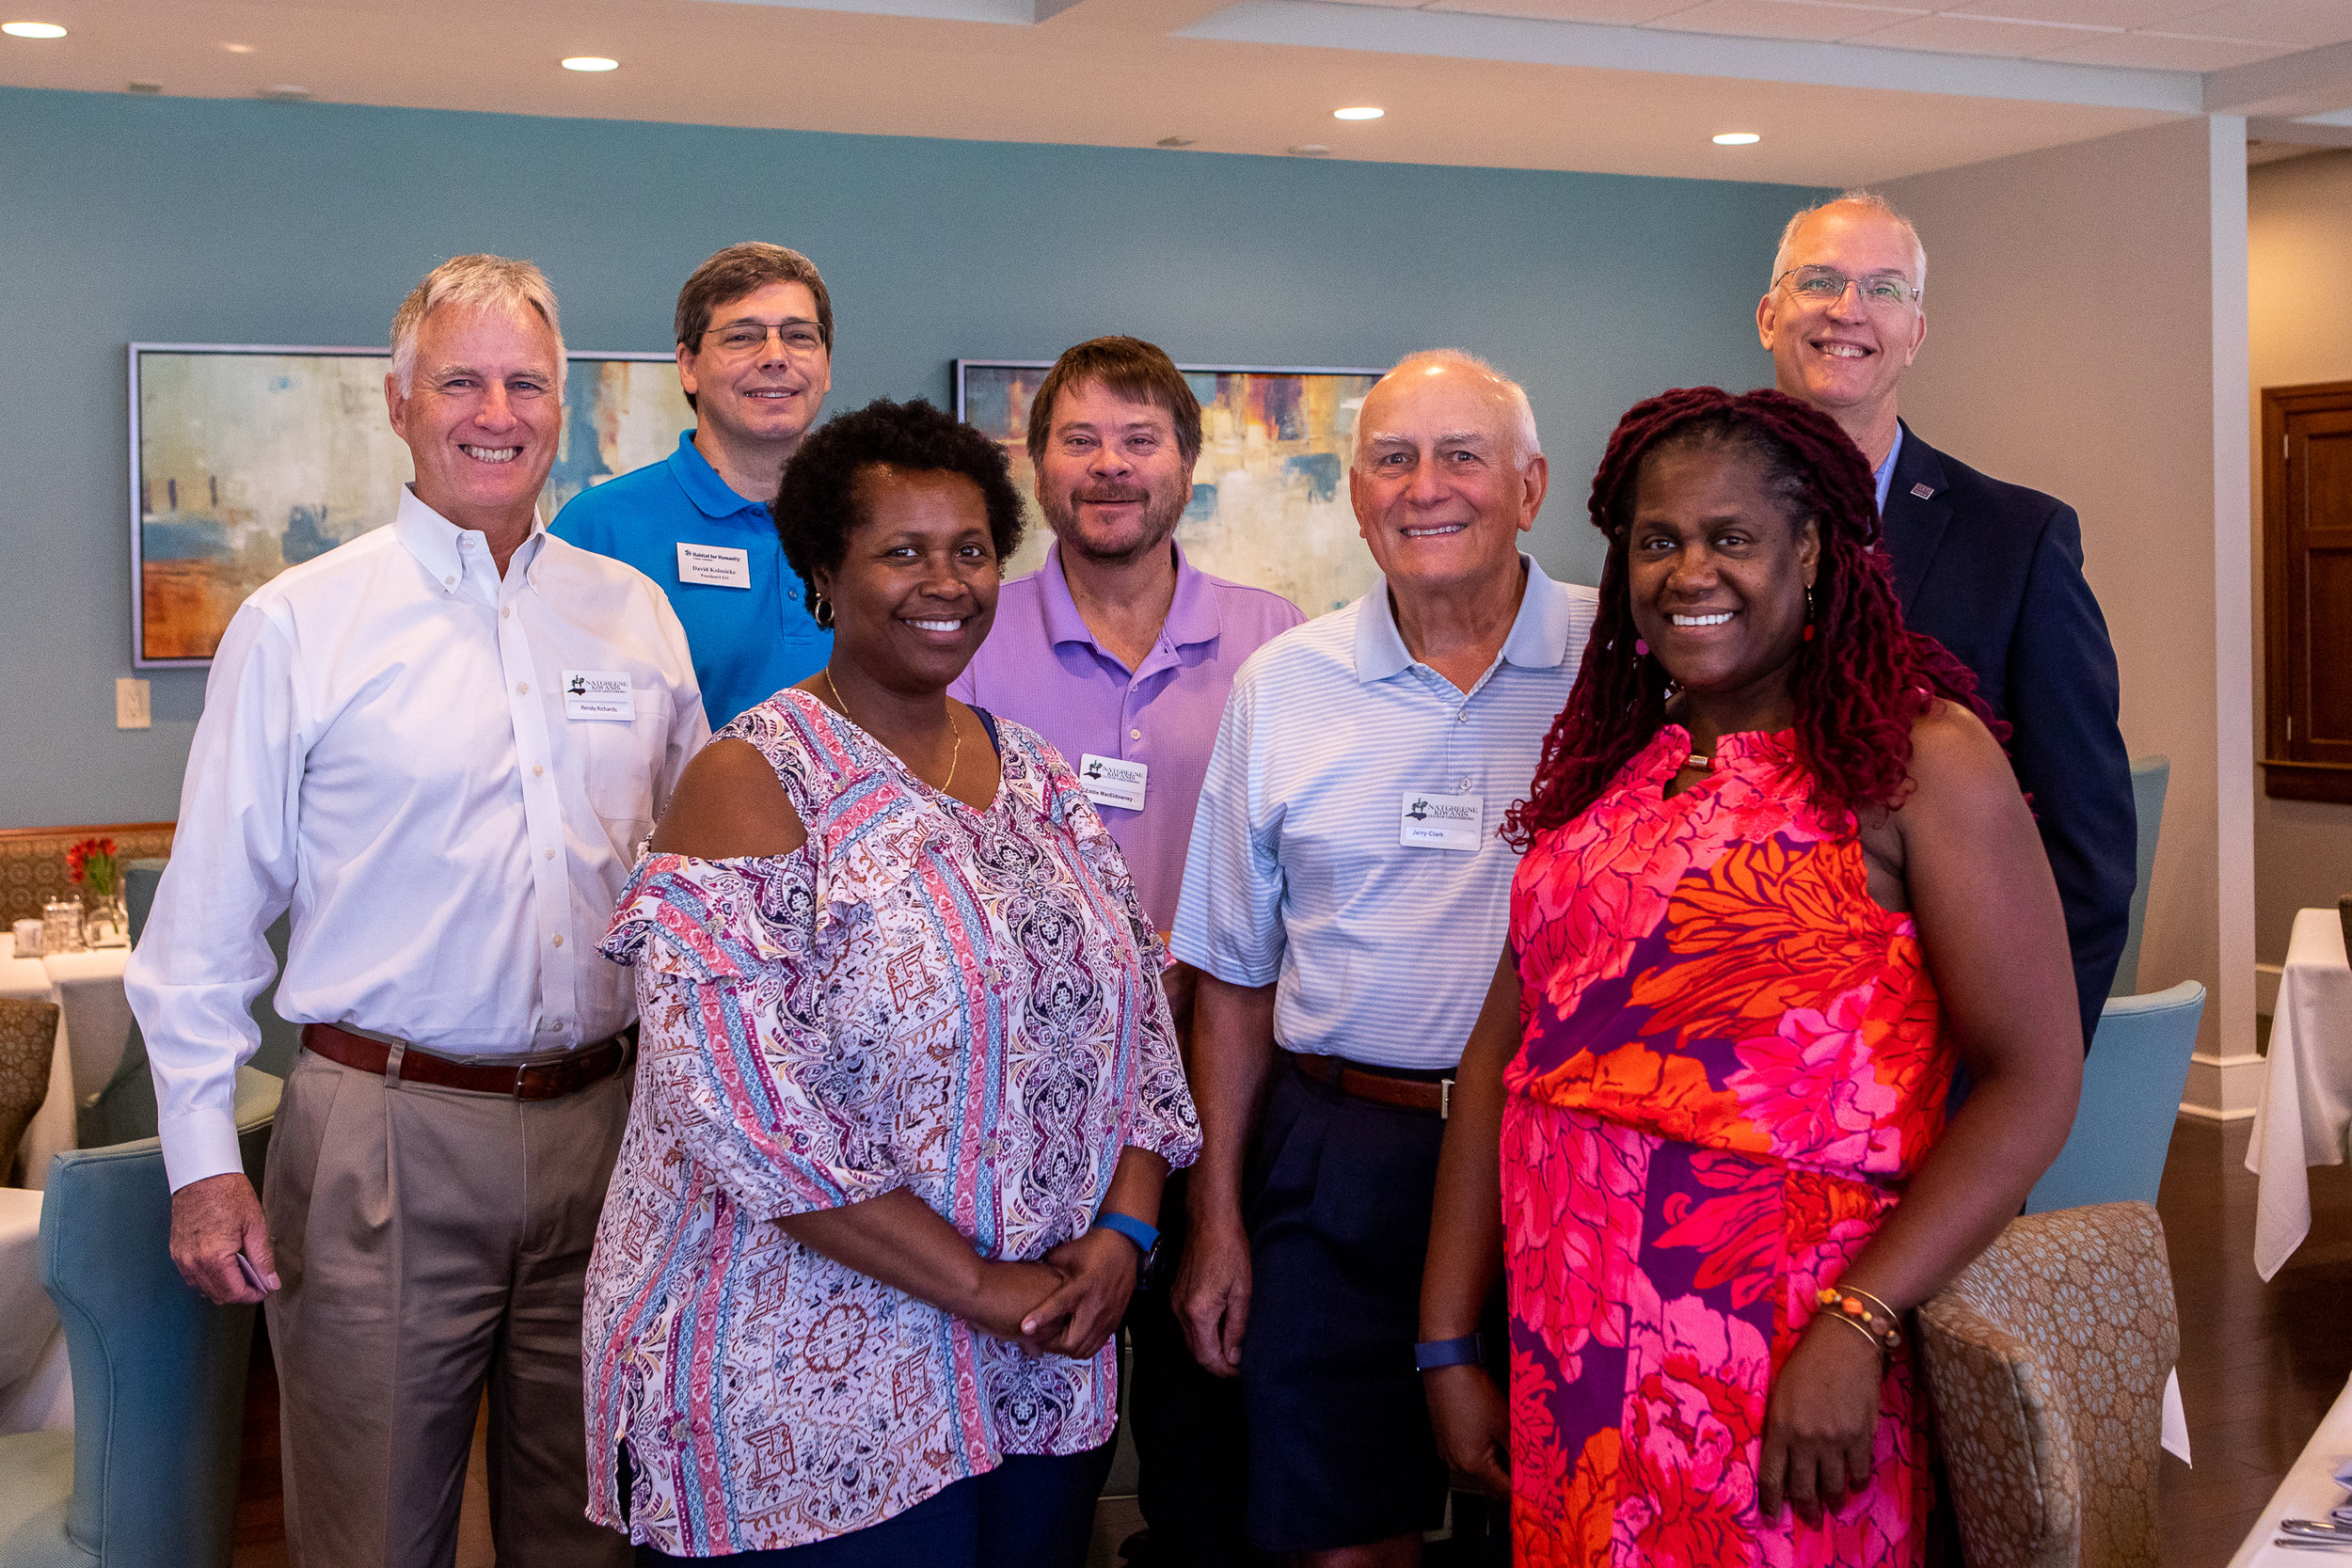 Habitat GSO at Kiwanis July 25, 2019-6204.jpg